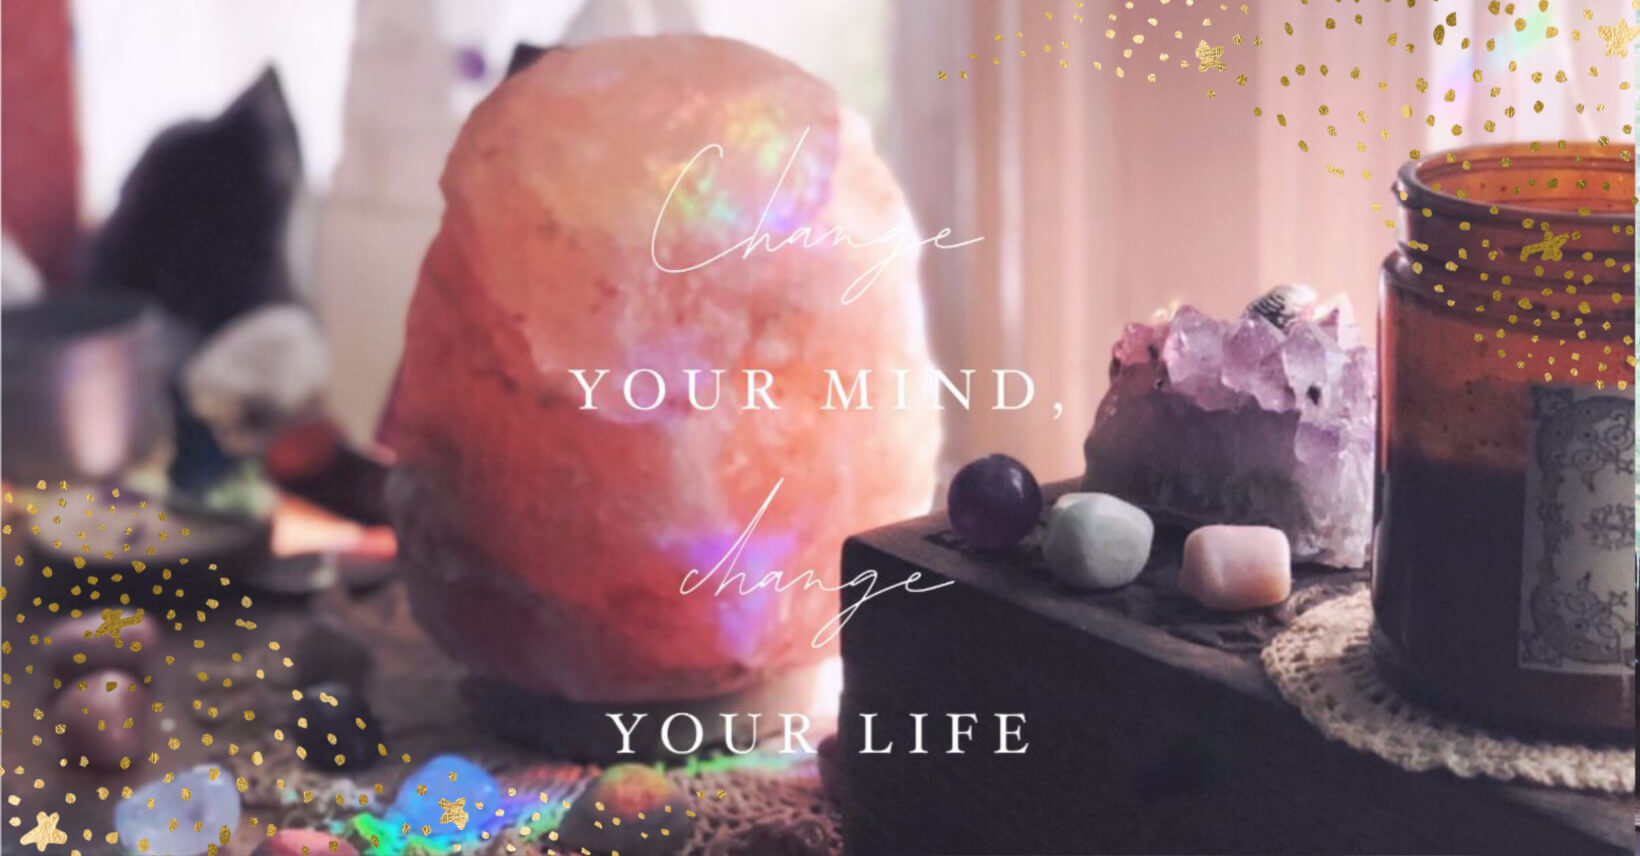 Dwell in Magic power of the mind